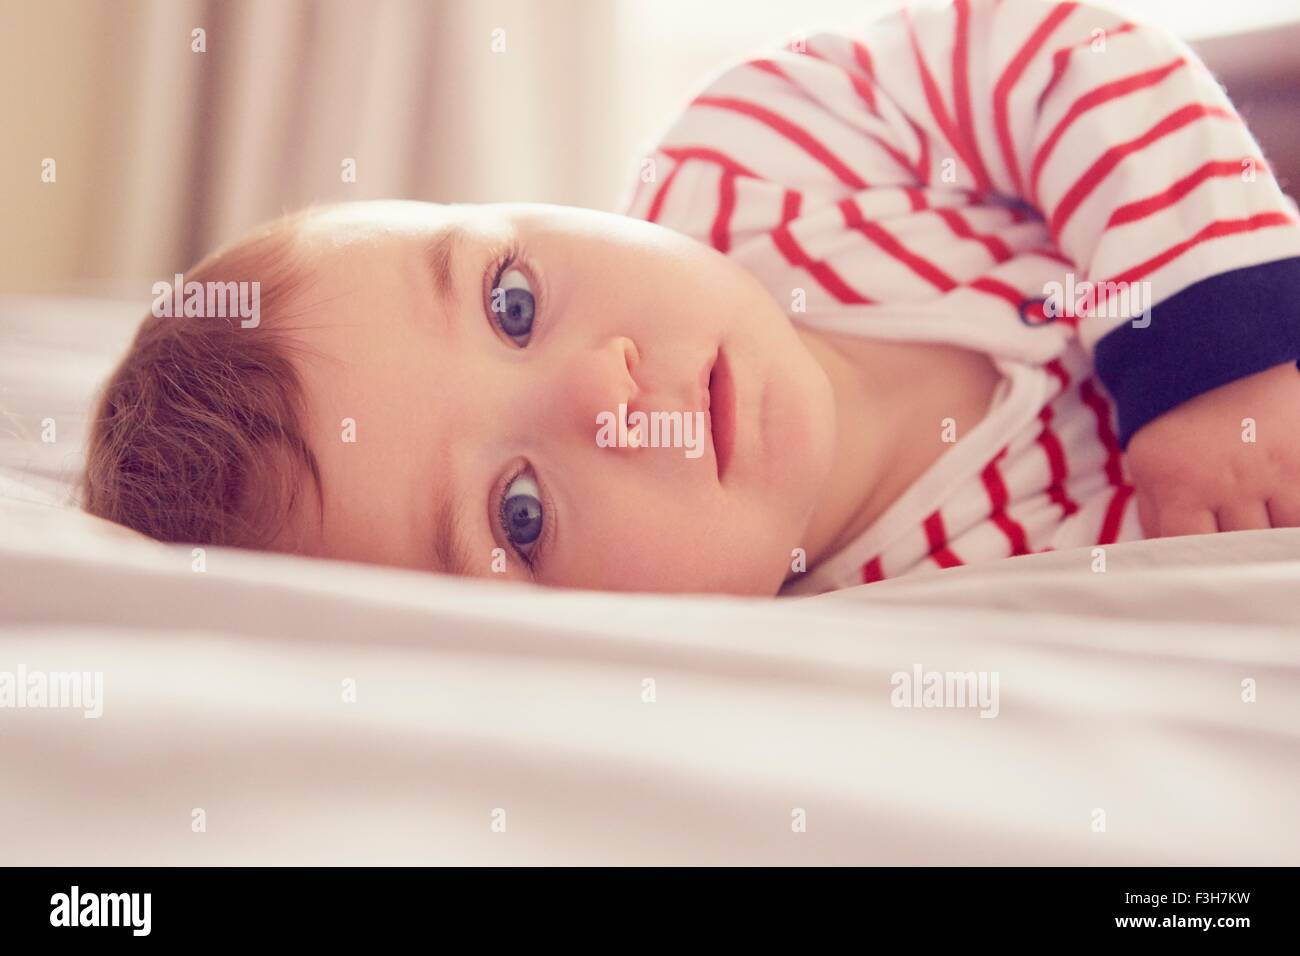 Baby boy lying on bed - Stock Image